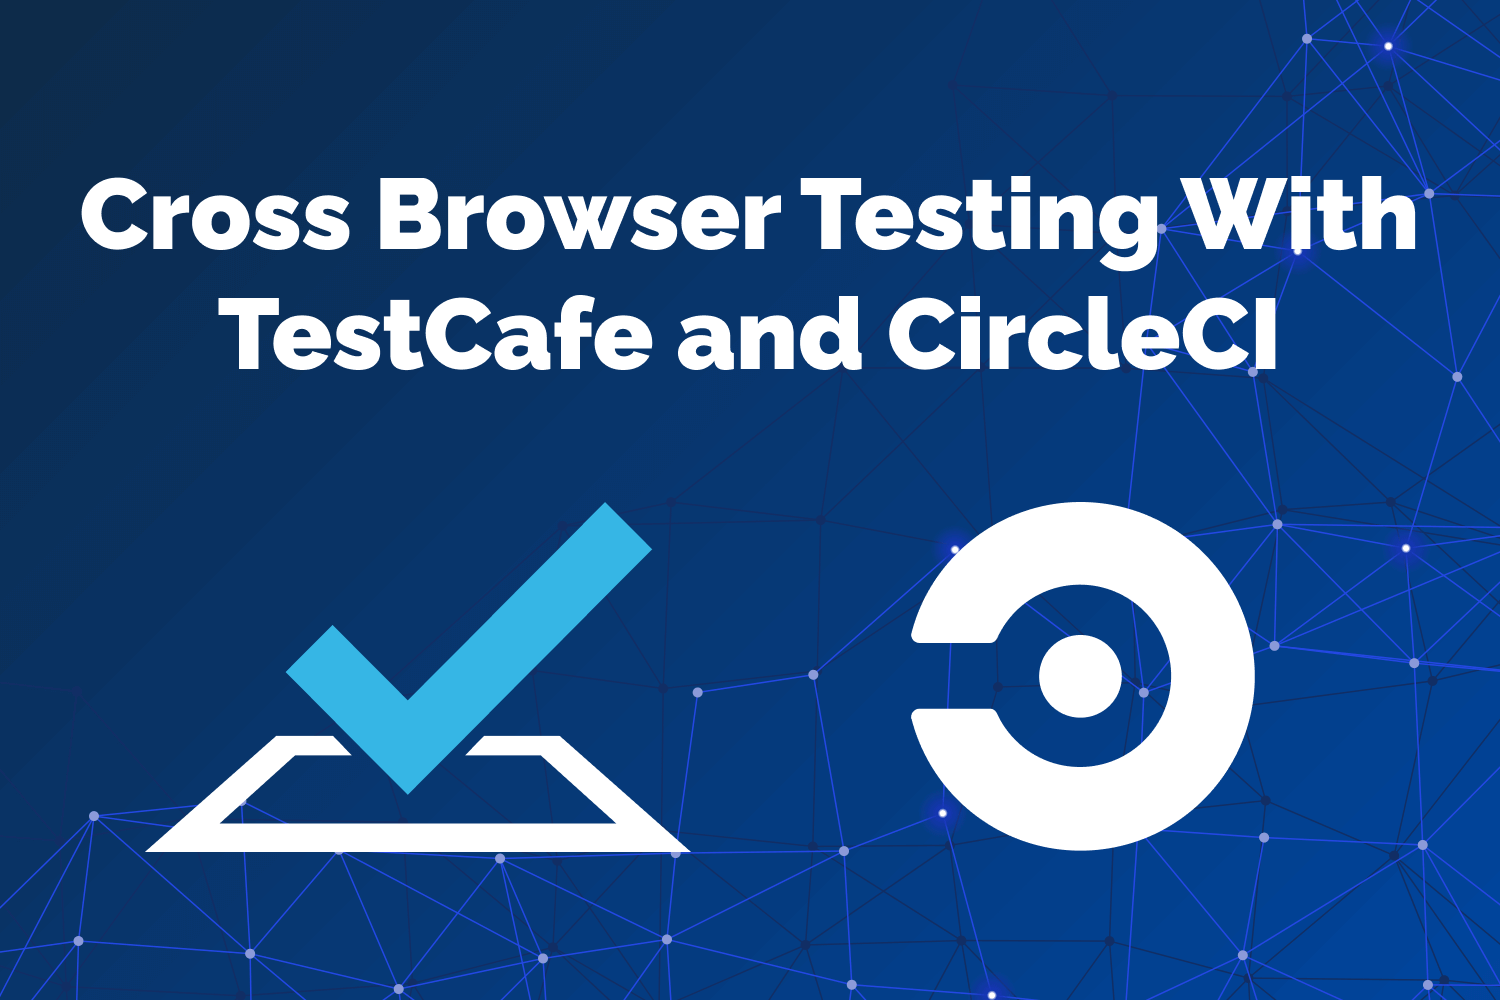 Cross Browser Testing With TestCafe and CircleCI